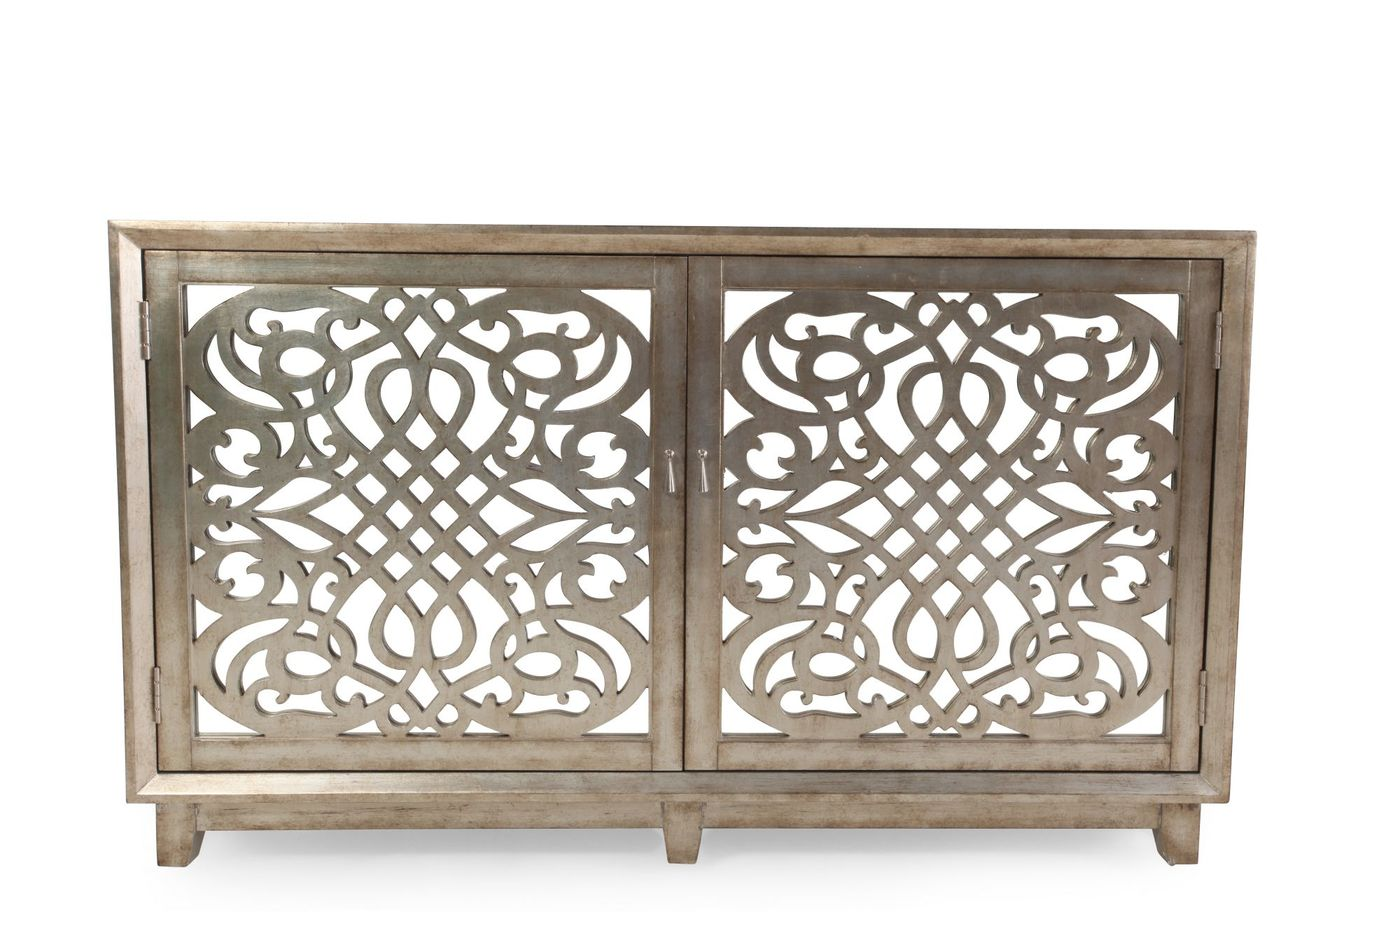 fretwork doors contemporary accent console light brown mathis pul table with glass tables toronto gold and mirror coffee xmas tablecloths runners hairpin leg bar stools end